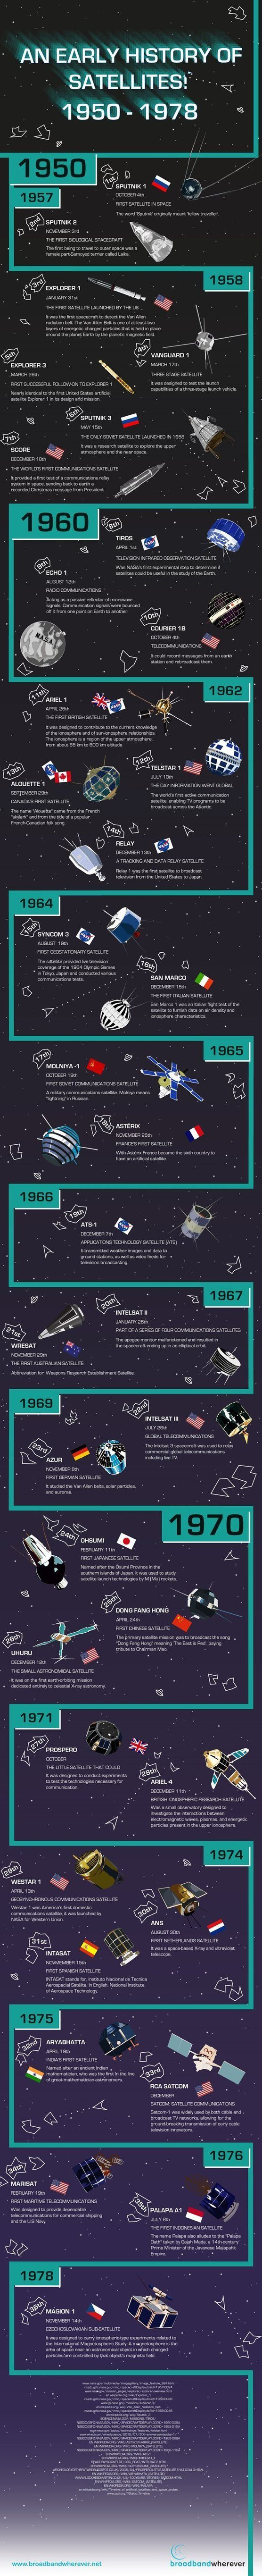 Infographic Shows The Quick-Changing Satellites Of The Early Space Age - Universe Today